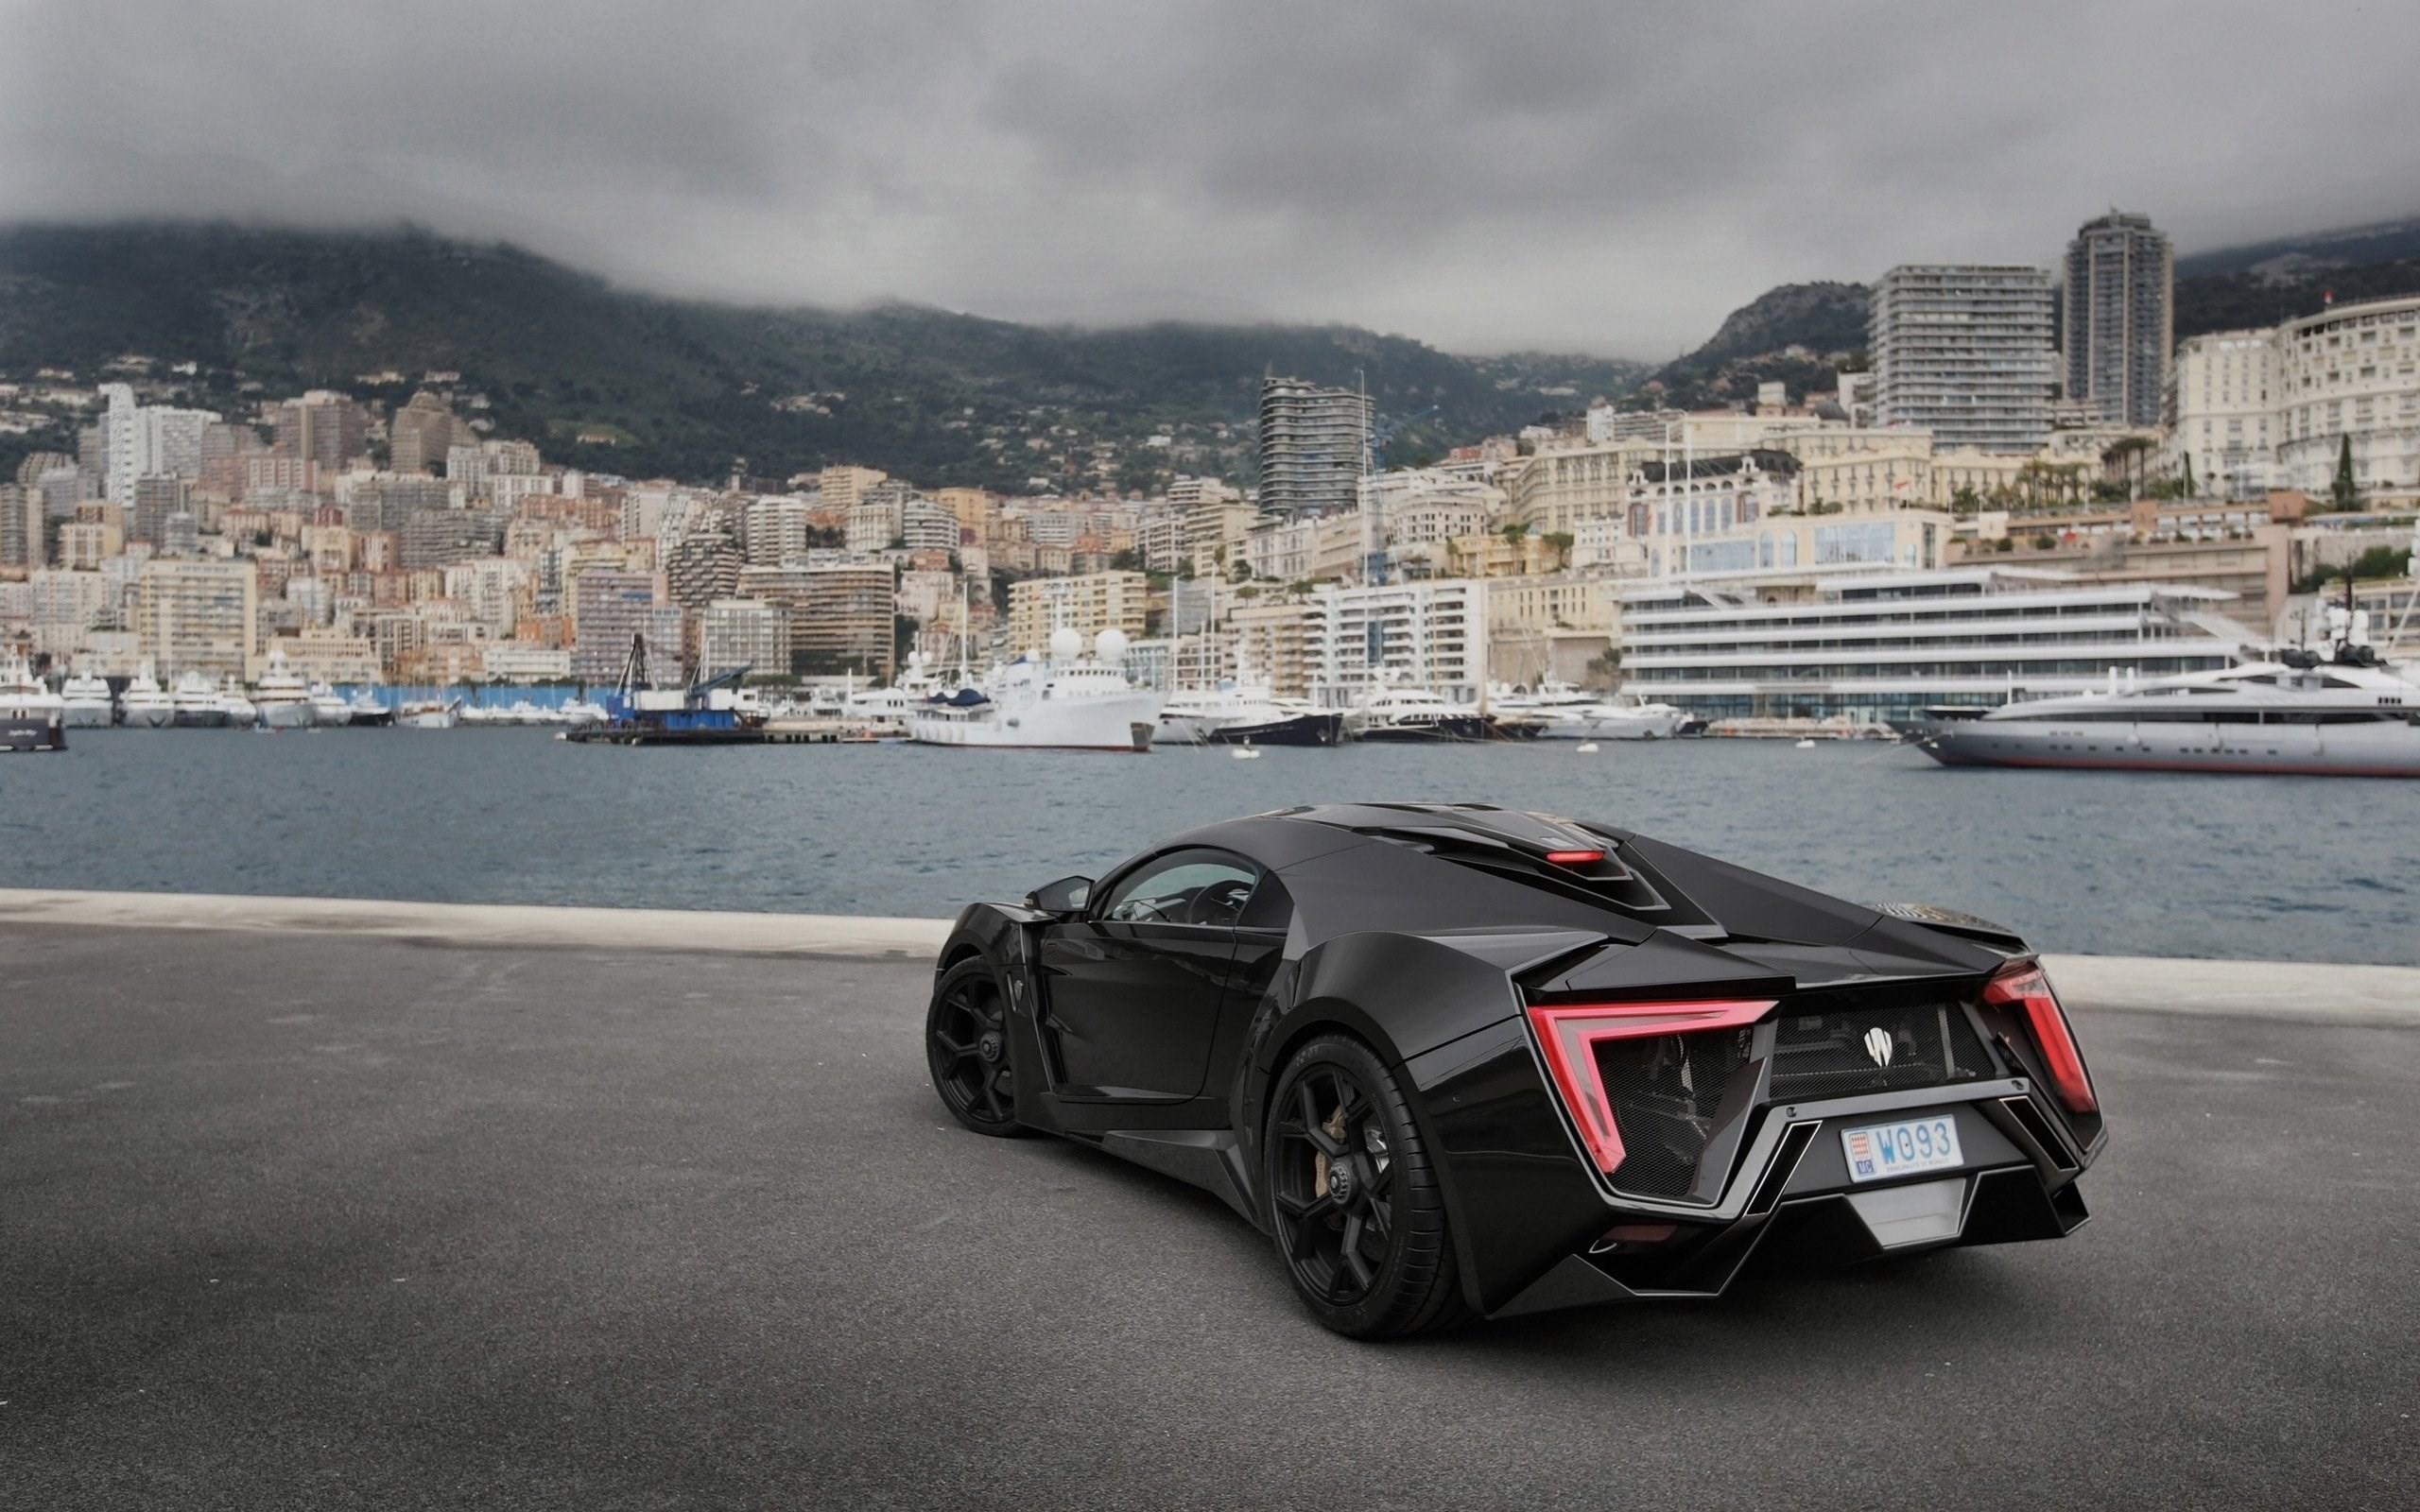 2560x1600 Whitby London - lykan hypersport themed -  px